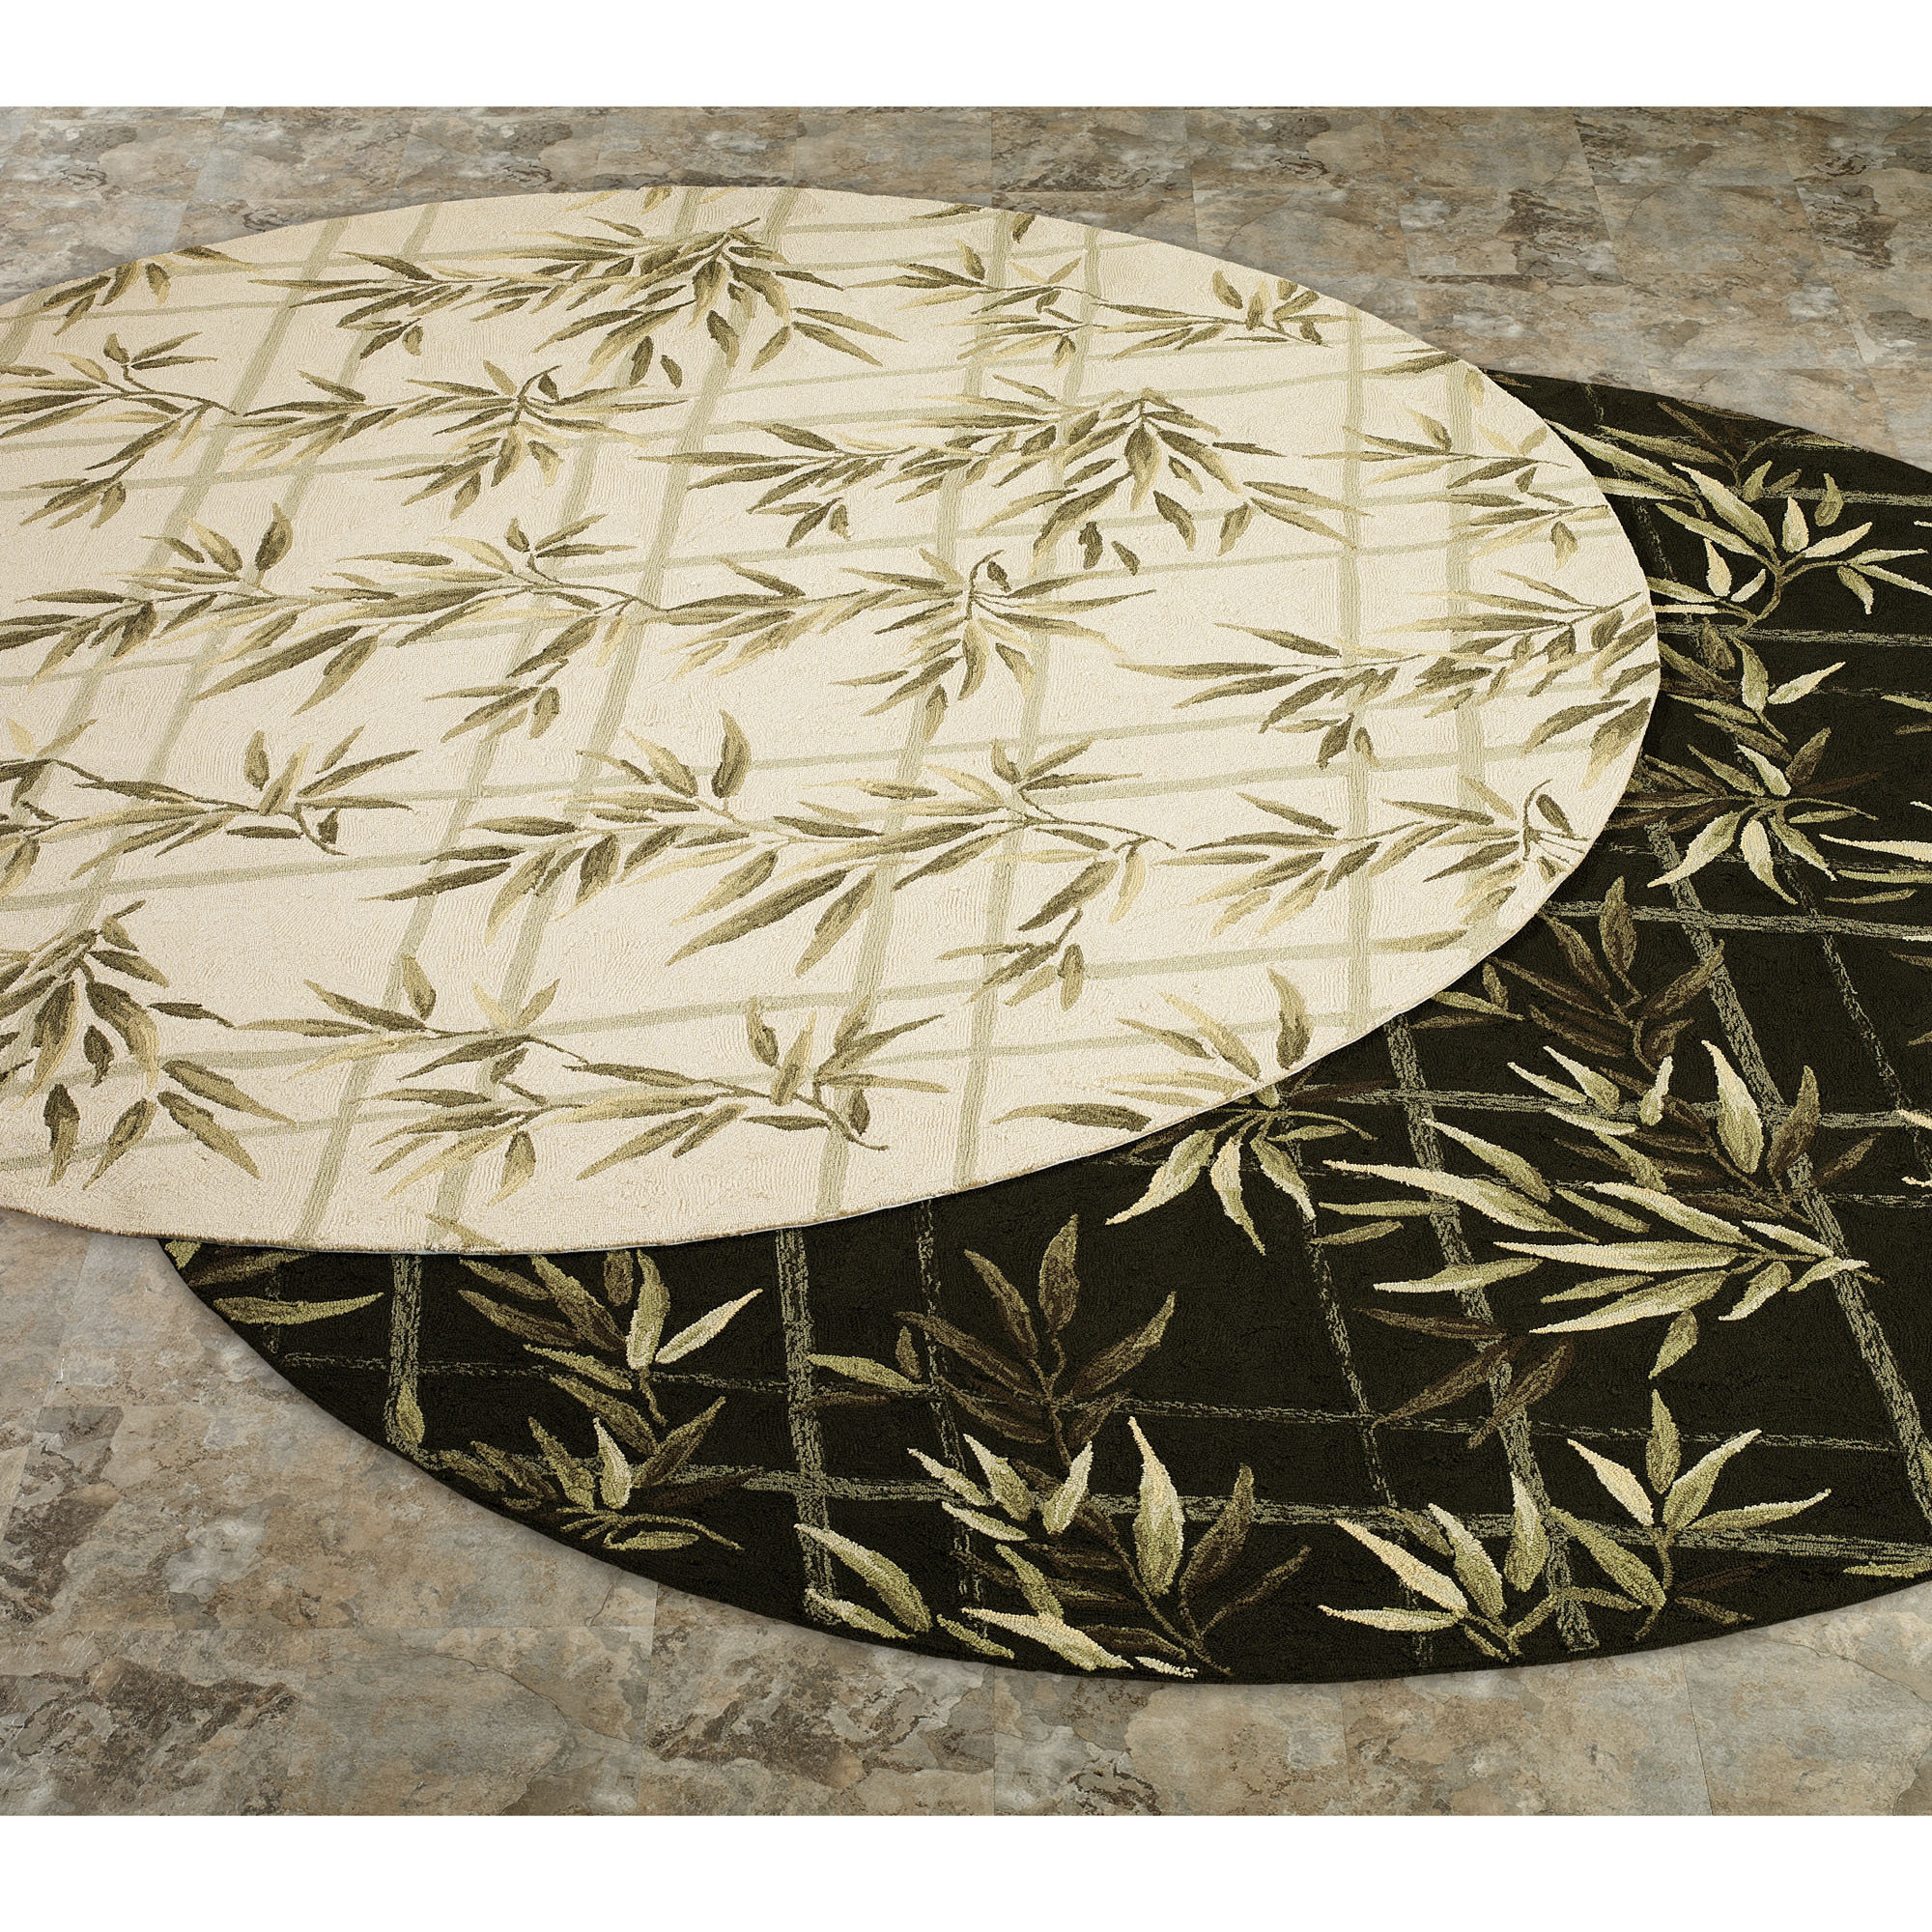 elegant lowes rugs with floral motif for floor decor ideas